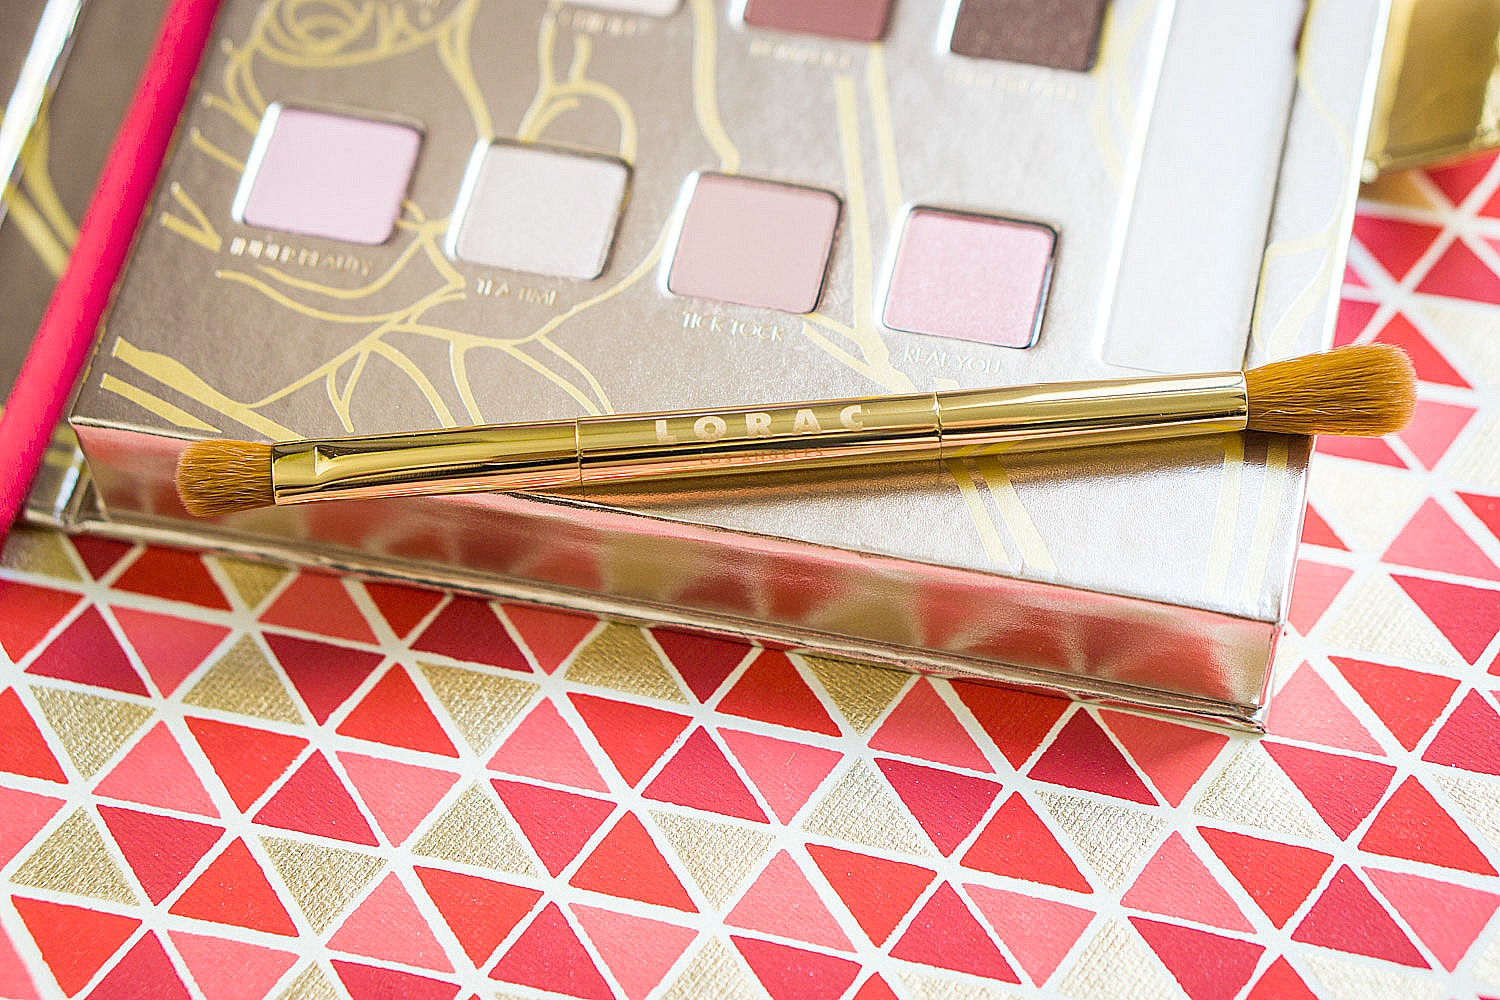 LORAC Beauty and the Beast Palette - Brush Review